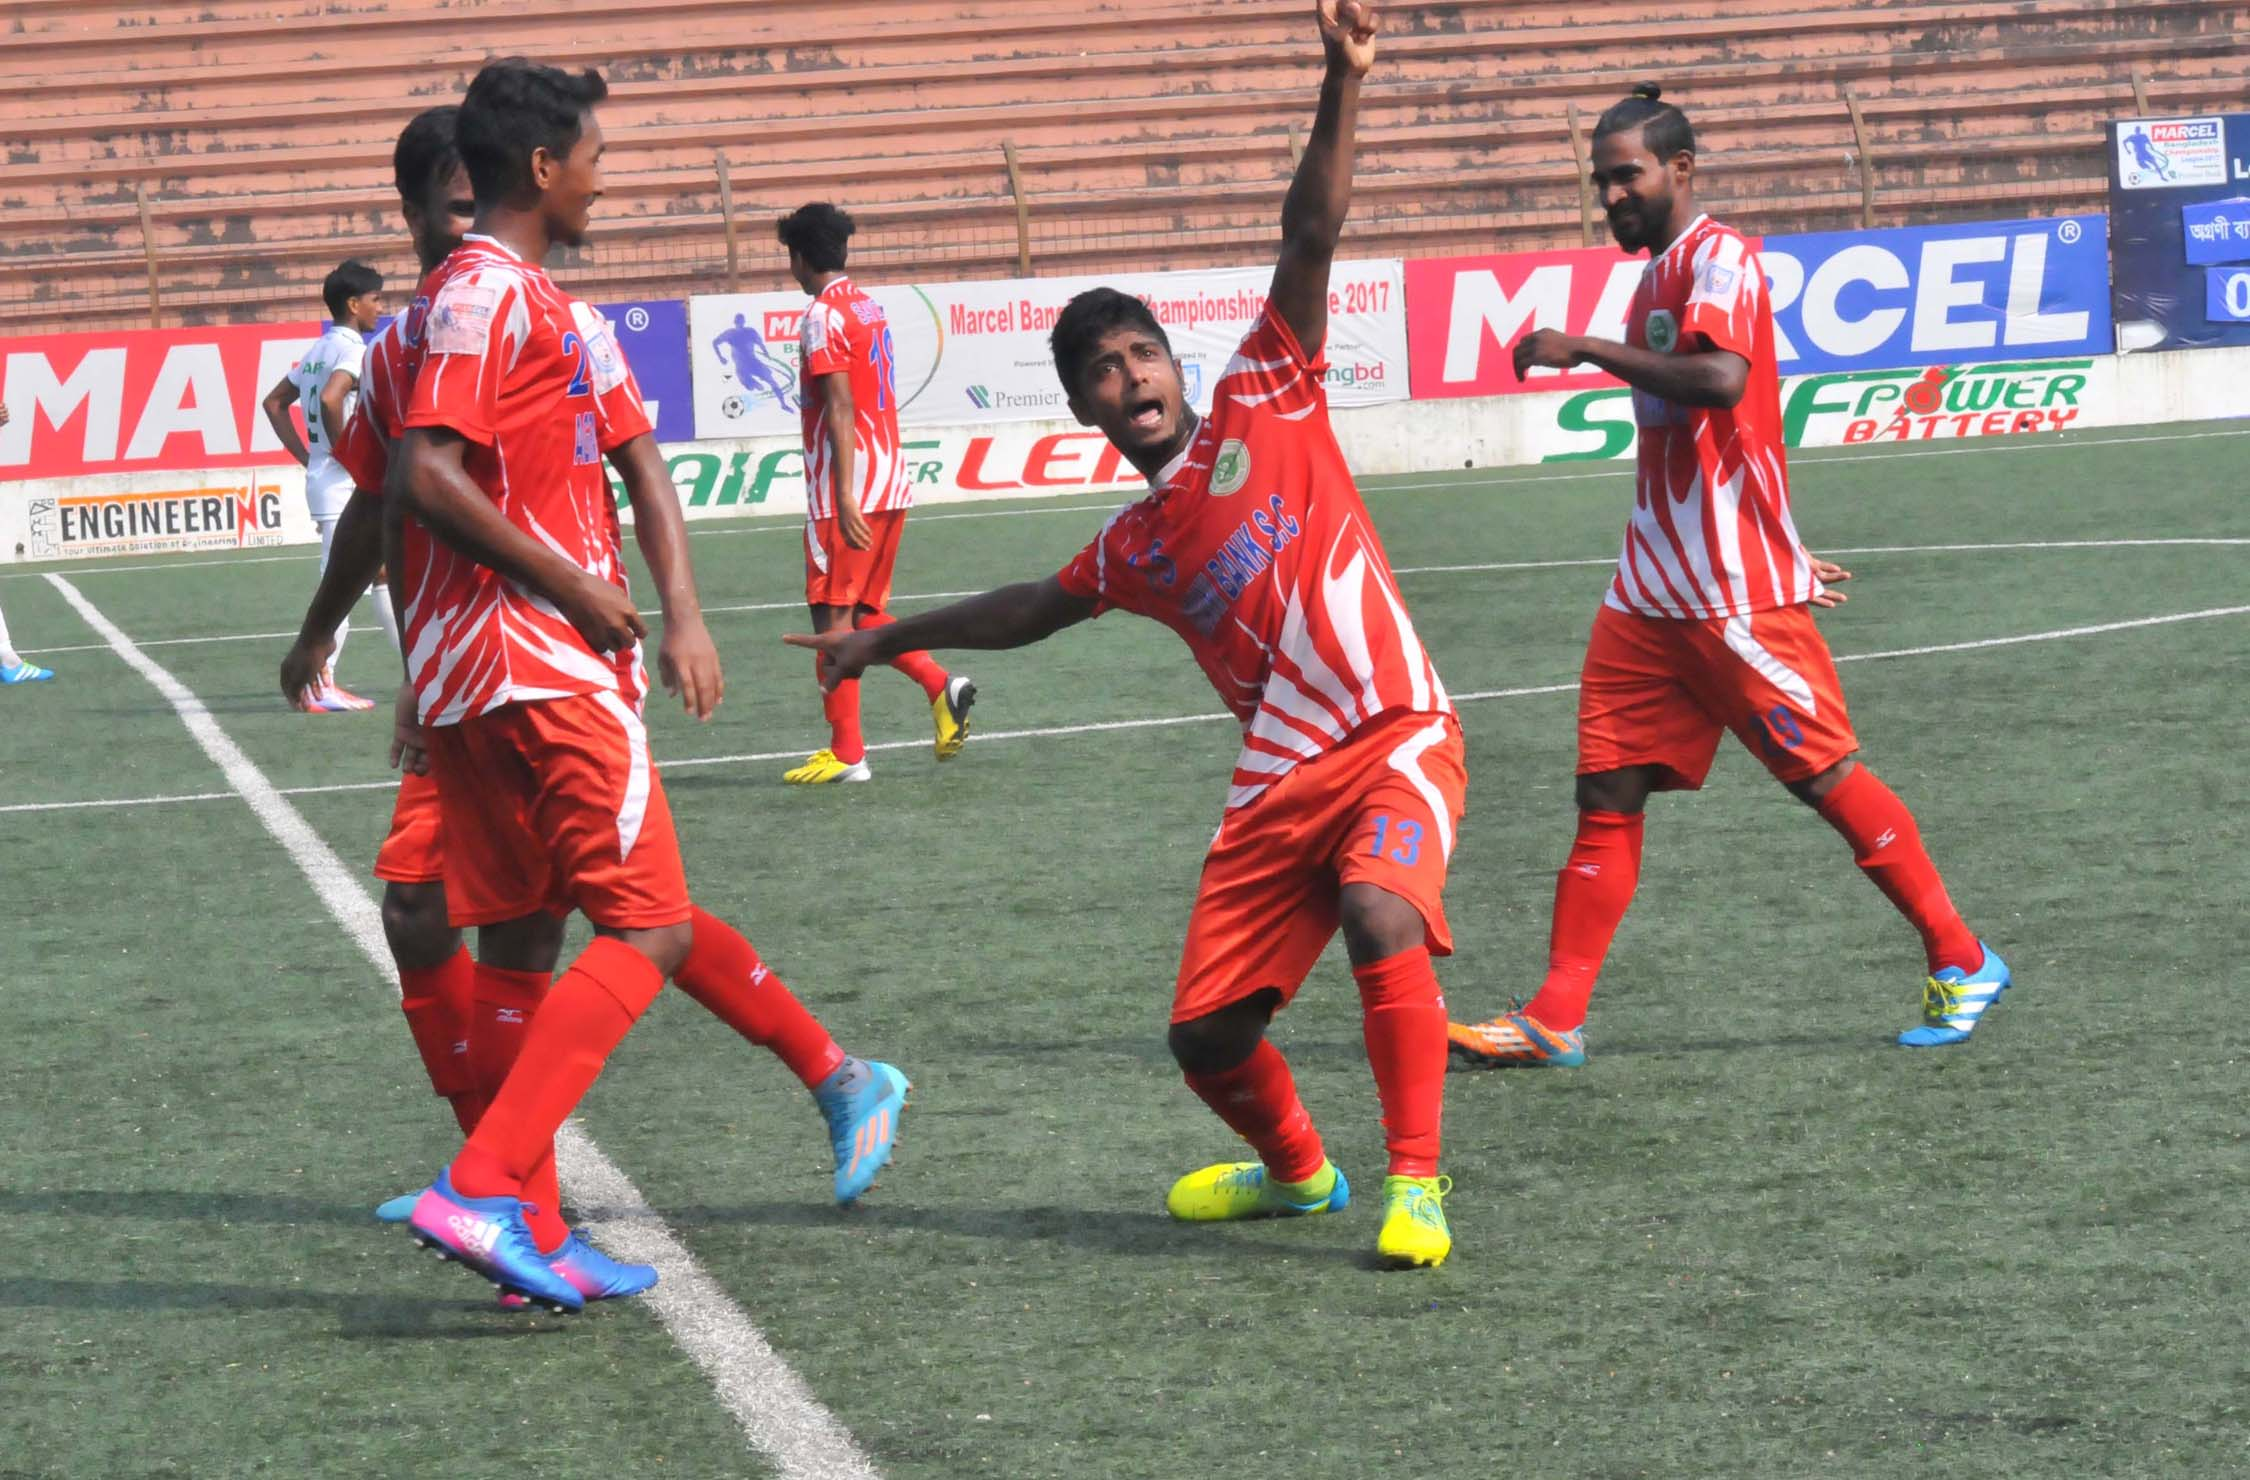 A moment of the match of the Bangladesh Championship League Football between Fakirerpool Youngmen's Club and Police Football Club at the Bir Shreshtha Shaheed Sepoy Mohammad Mostafa Kamal Stadium in the city's Kamalapur on Tuesday. The match ended in a goalless draw.